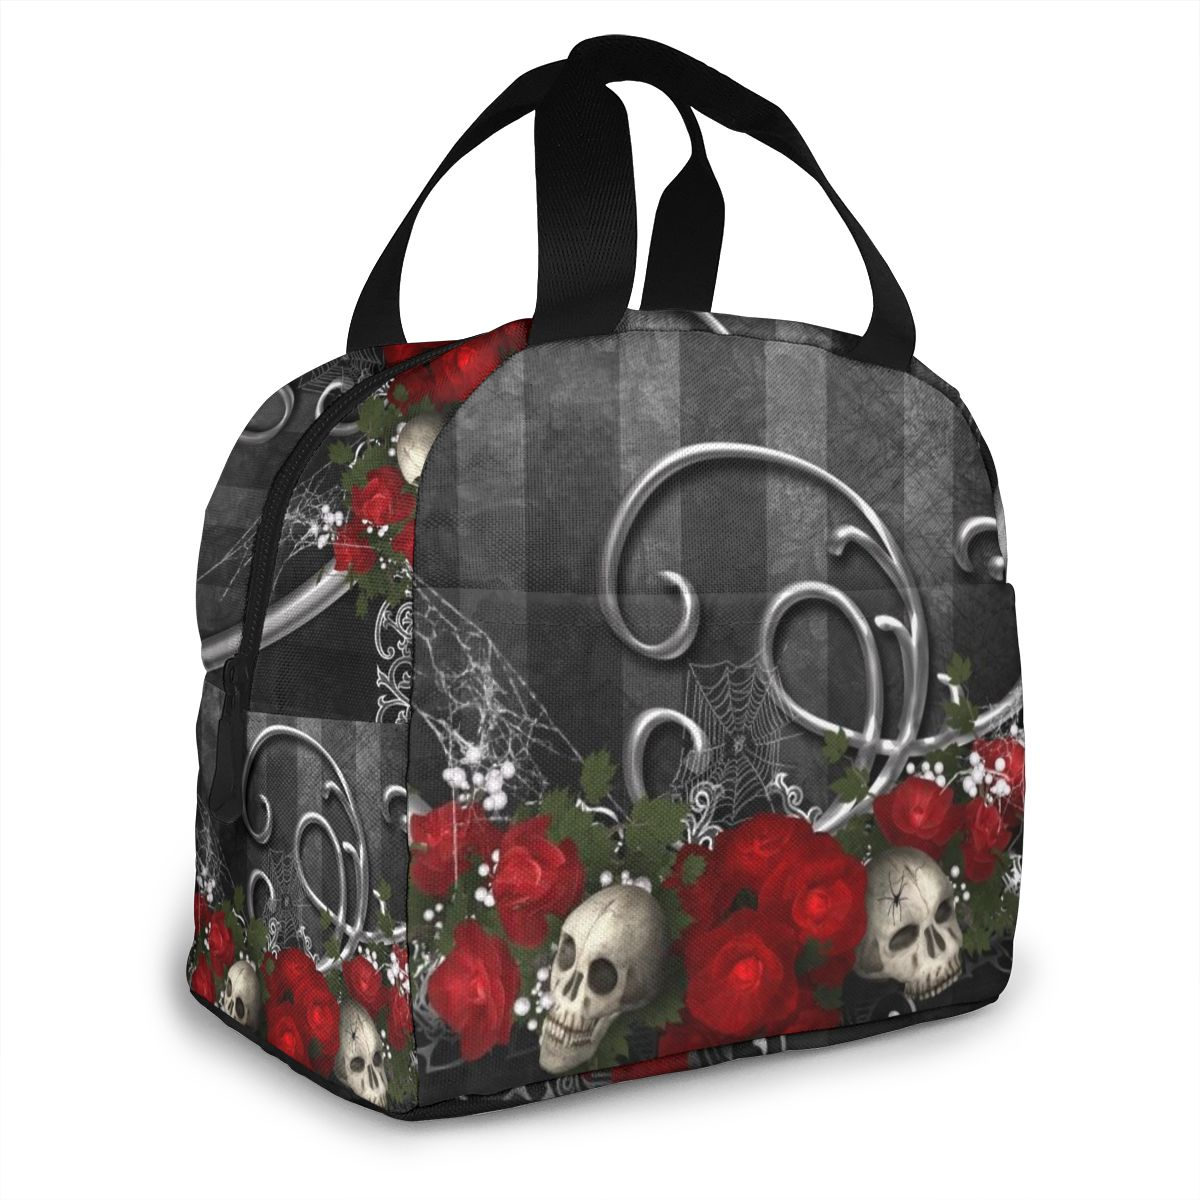 NOISYDESIGNS Fresh Insulated Cold Bales Lunch Bags Gothic Roses Skulls Printing Sac Isotherme Lunch Box Kids Women Bolsa Termica